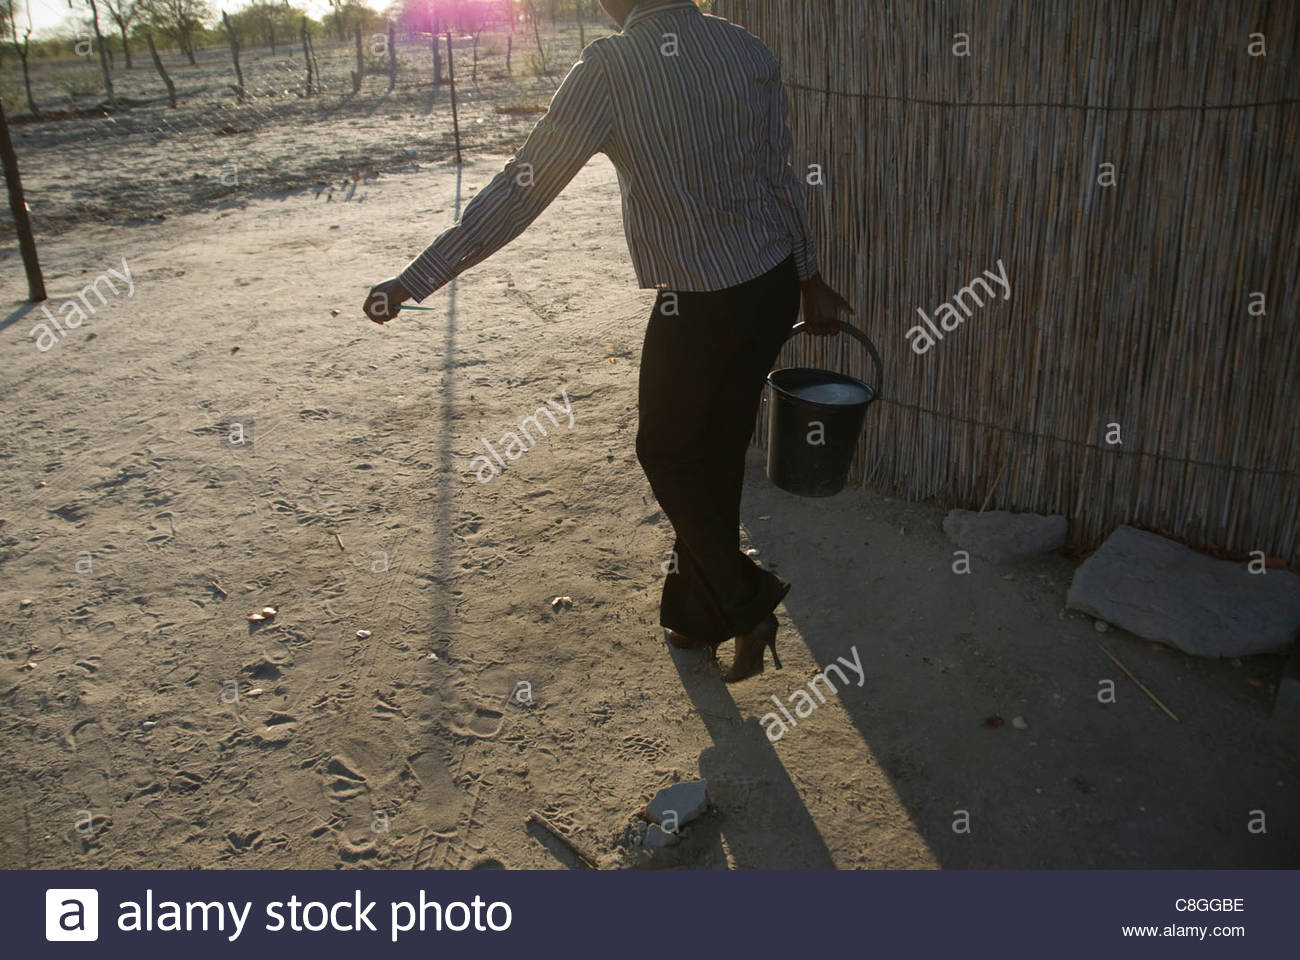 A woman fetching water for her one-room house. - Stock Image